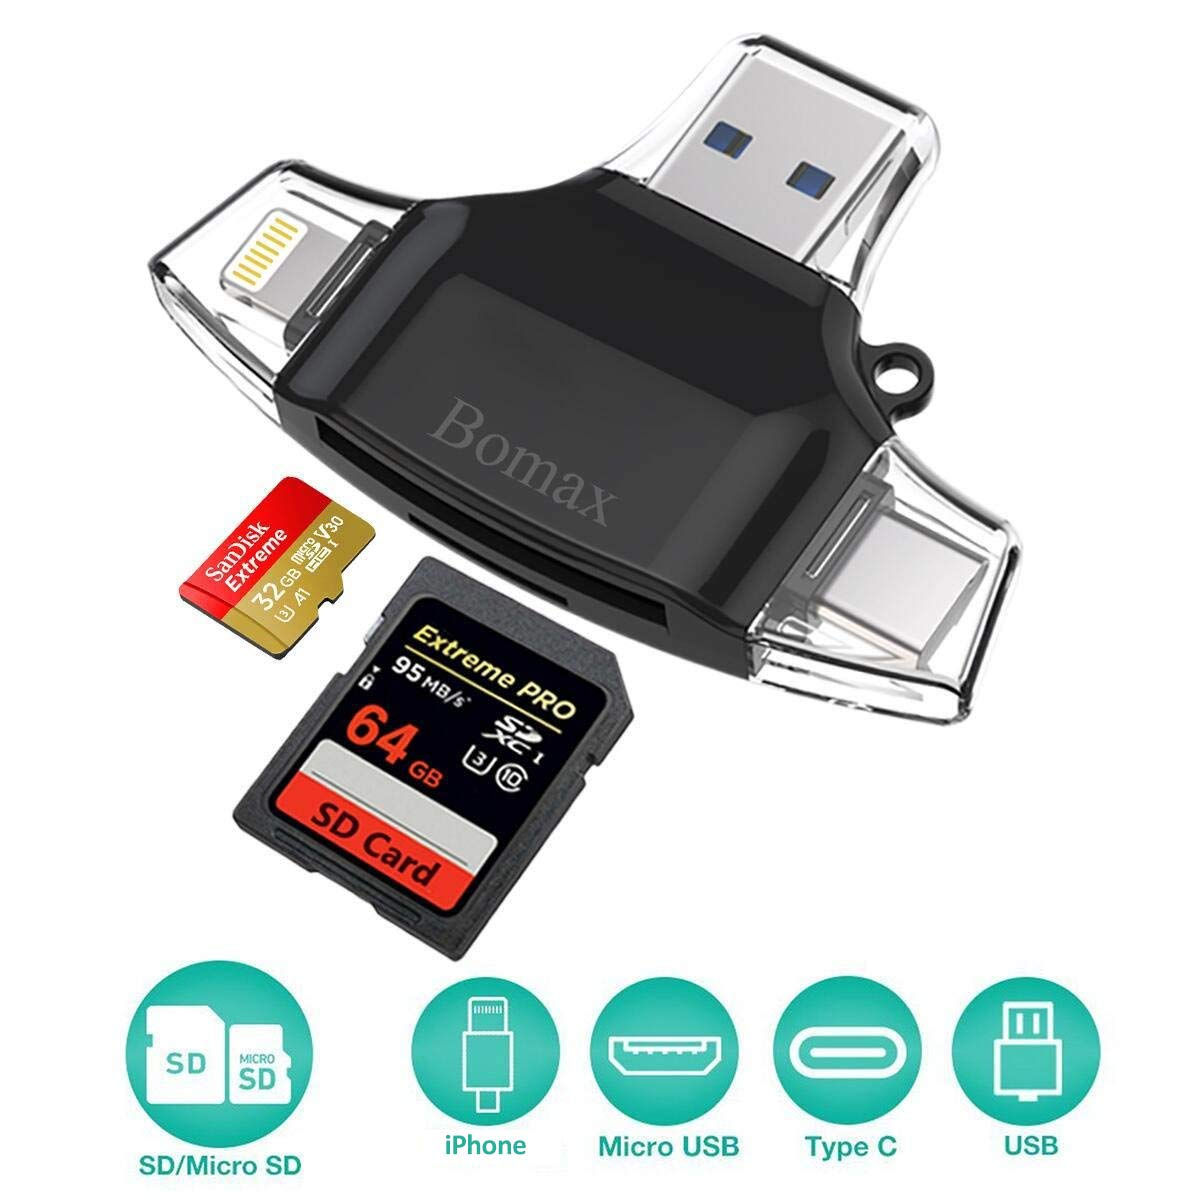 Card Reader,BOMAX SD Micro Card Reader Portable SD Card Reader Tf Card  Reader & USB C Micro SD Card Adapter for Computer iPhone iPad GALAXY S8  Android